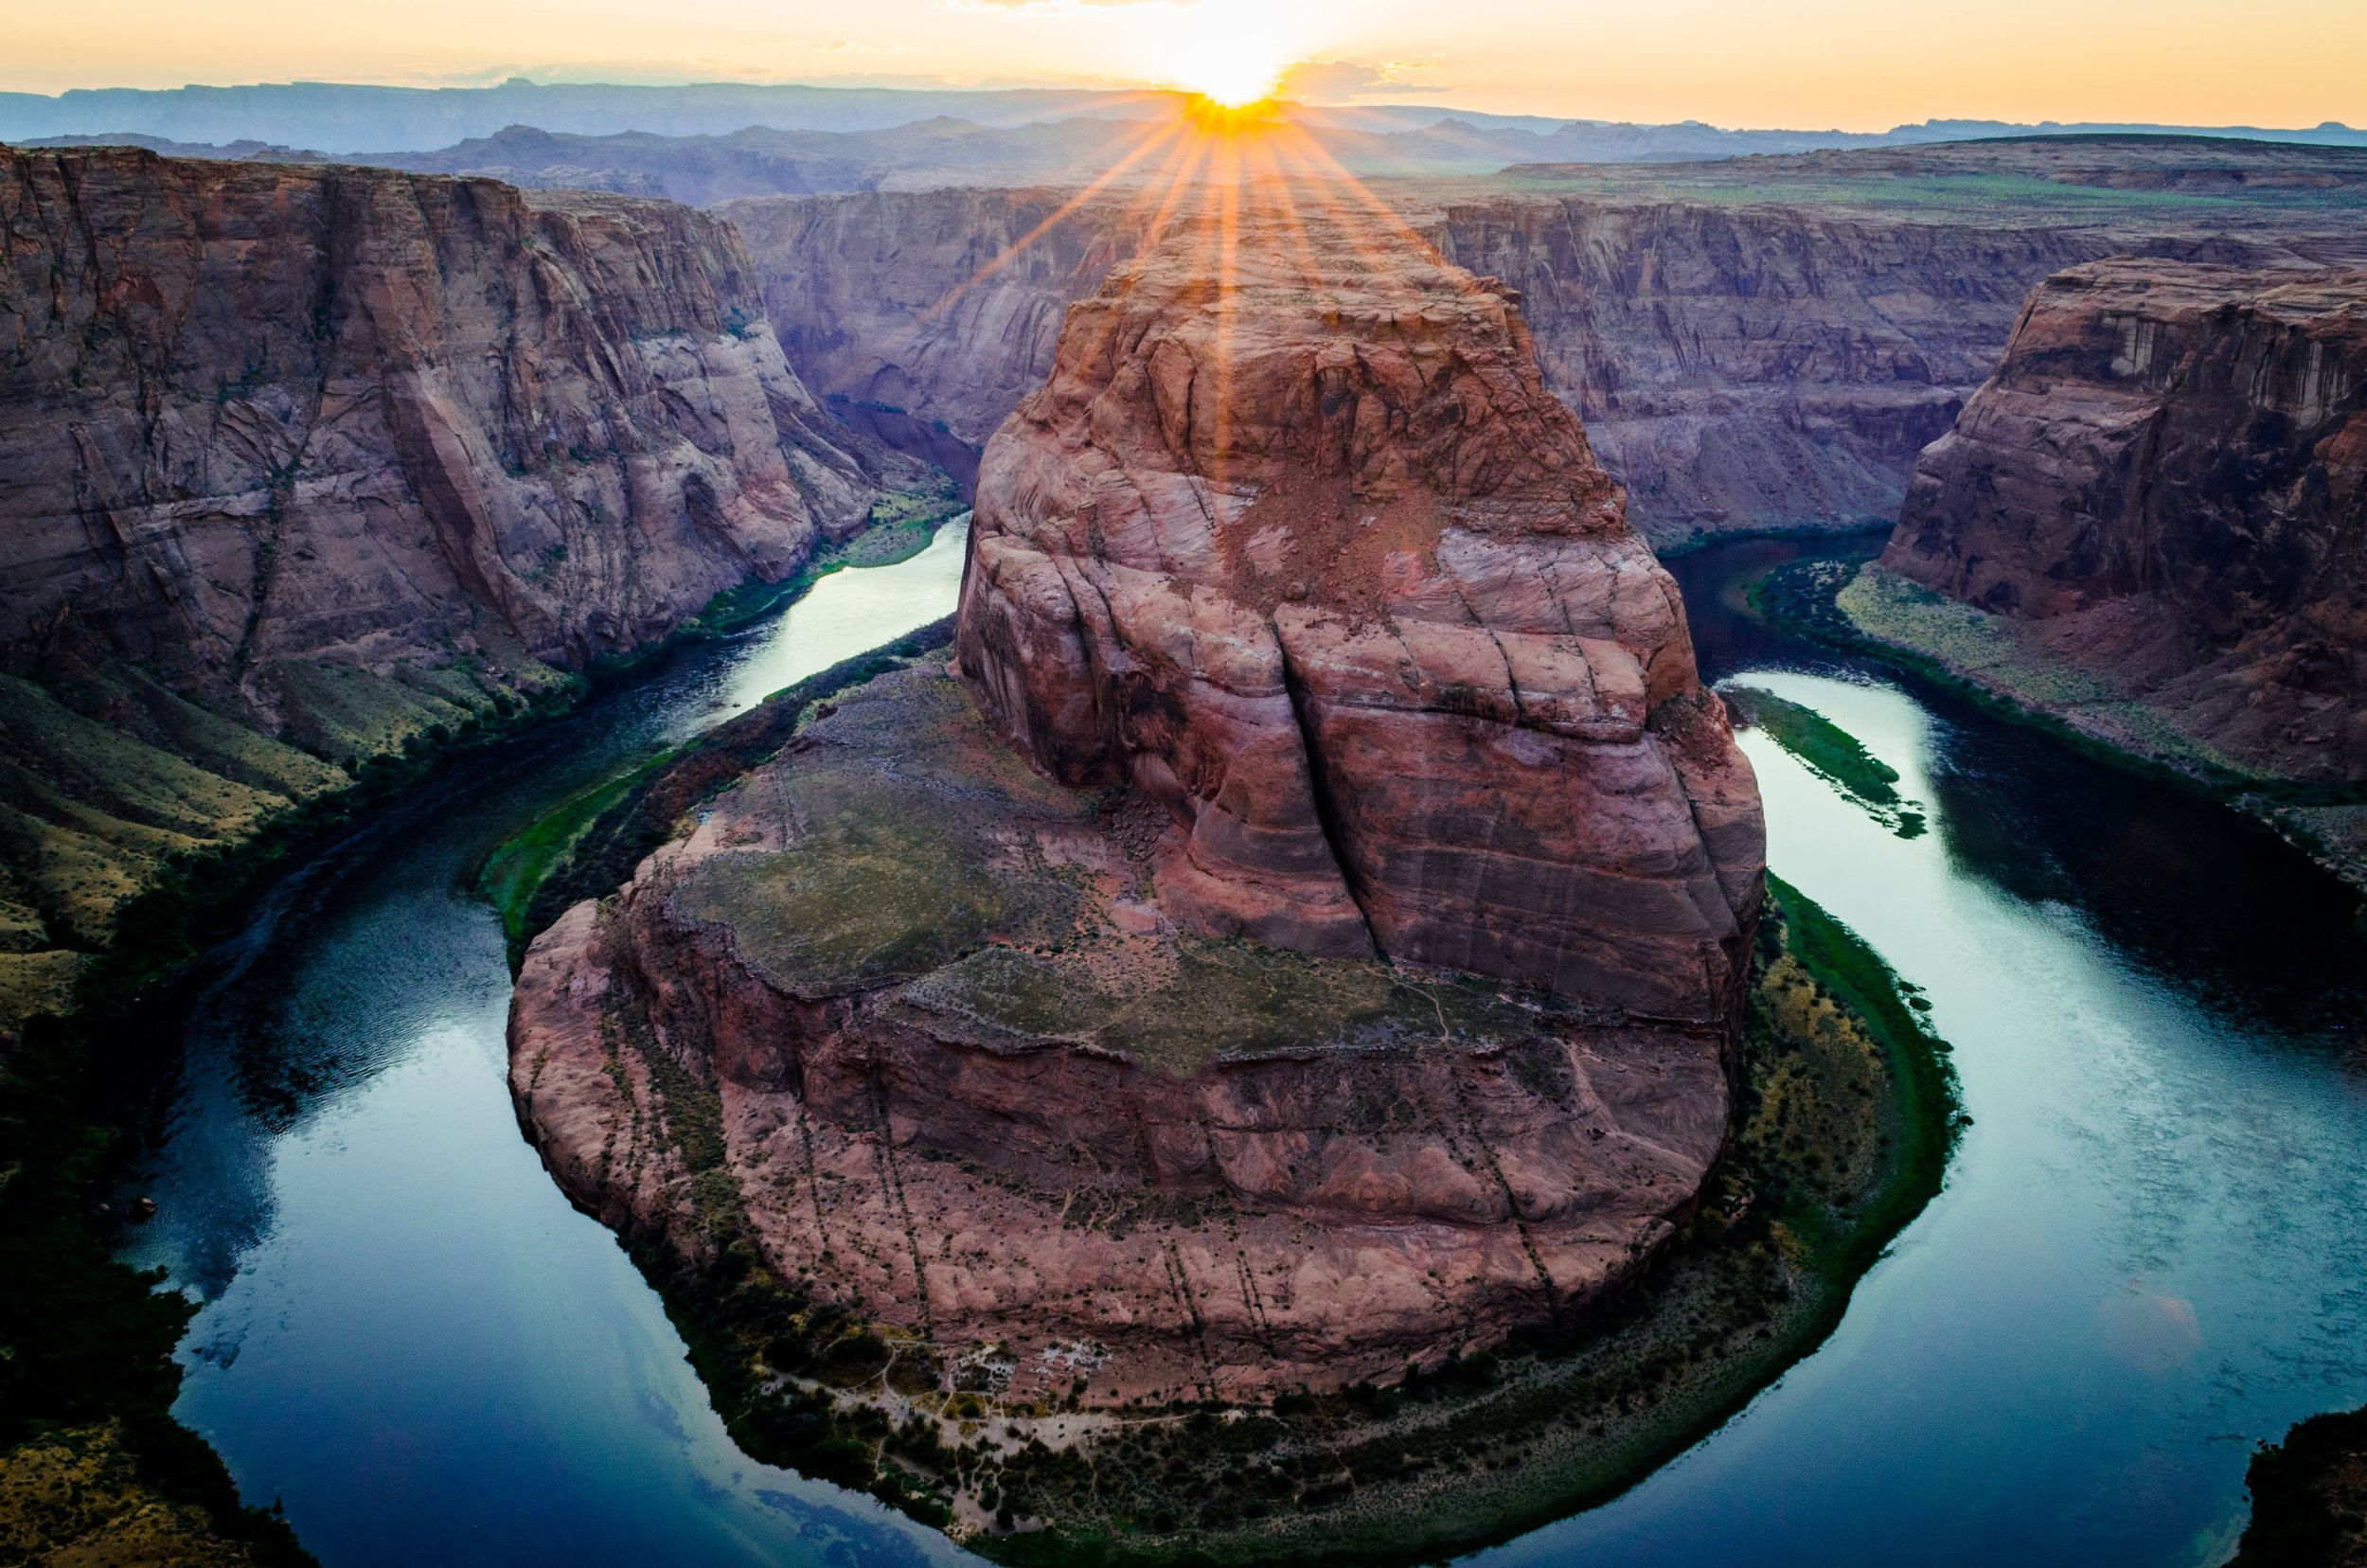 The Grand Canyon's Horseshoe Bend provides one of the Southwest's most remarkable viewing spots.